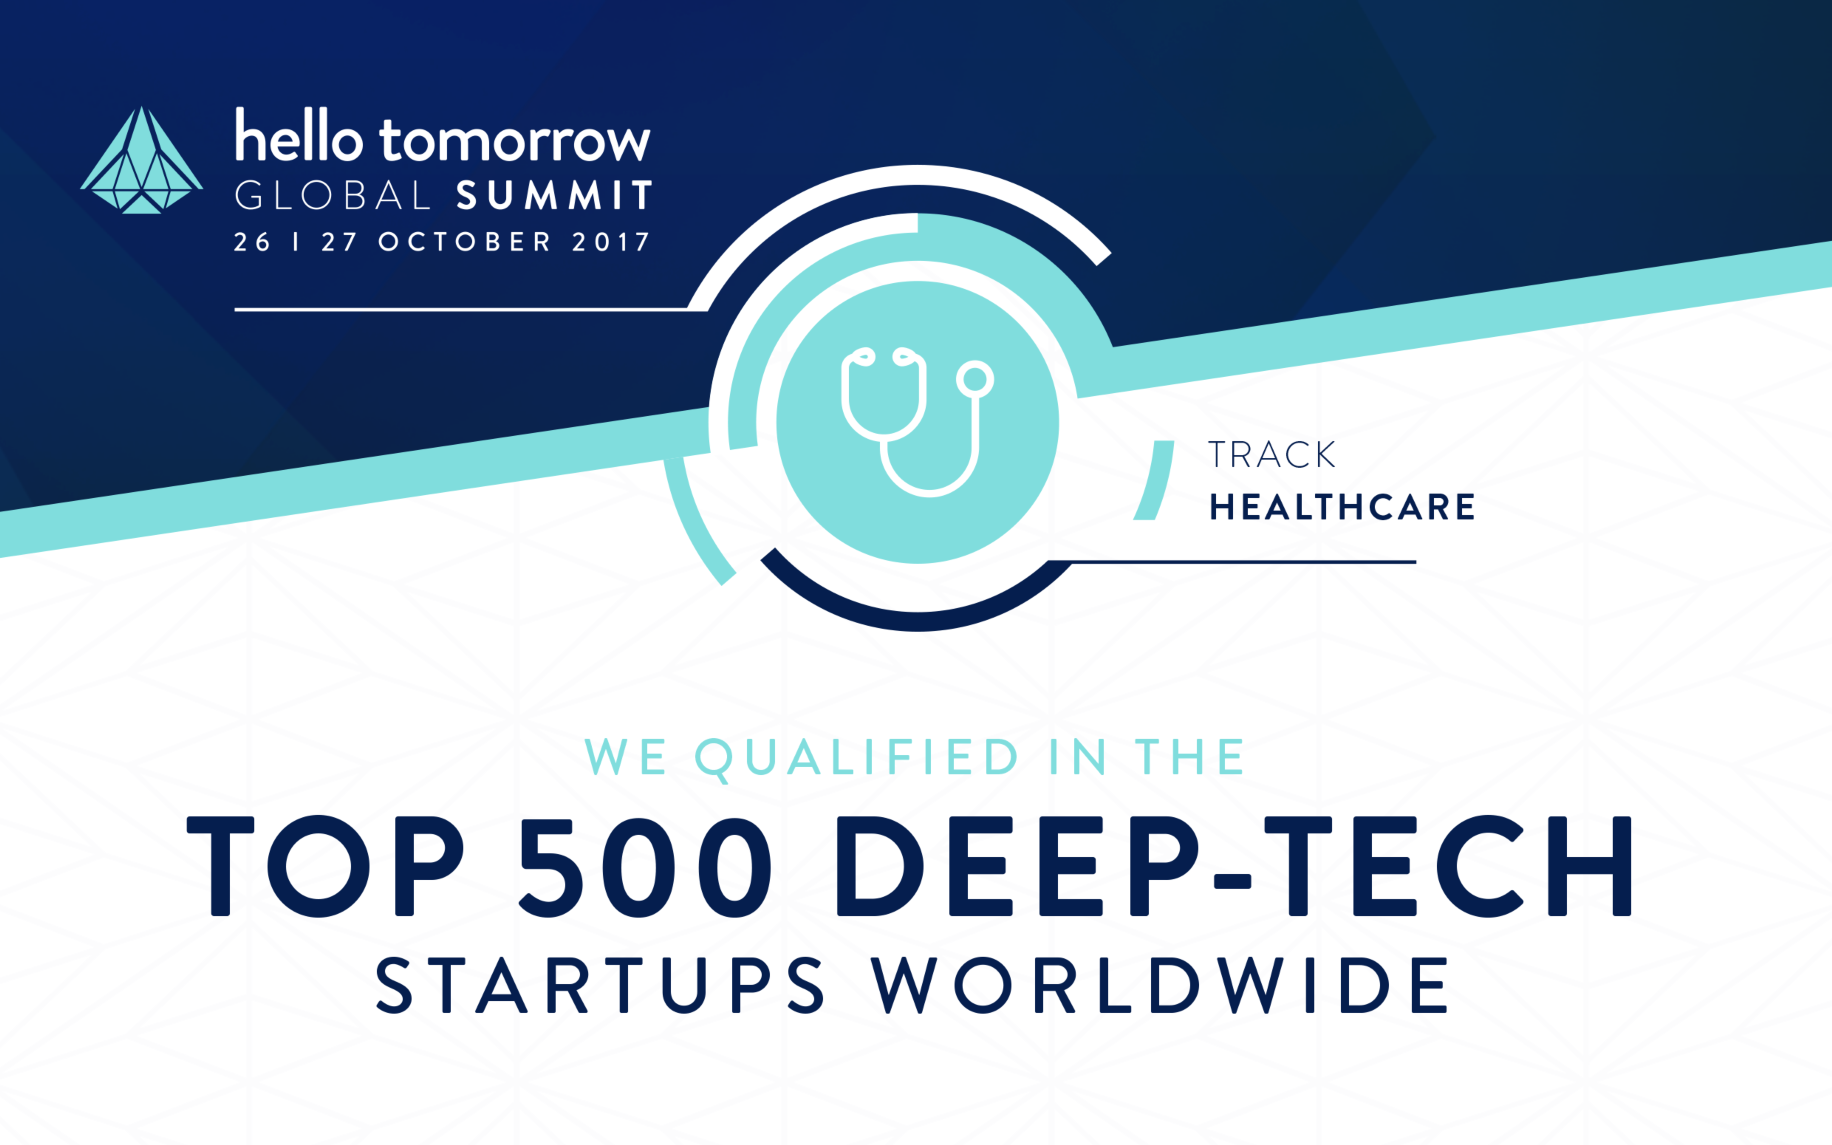 We Qualified in the Top 500 - Healthcare track